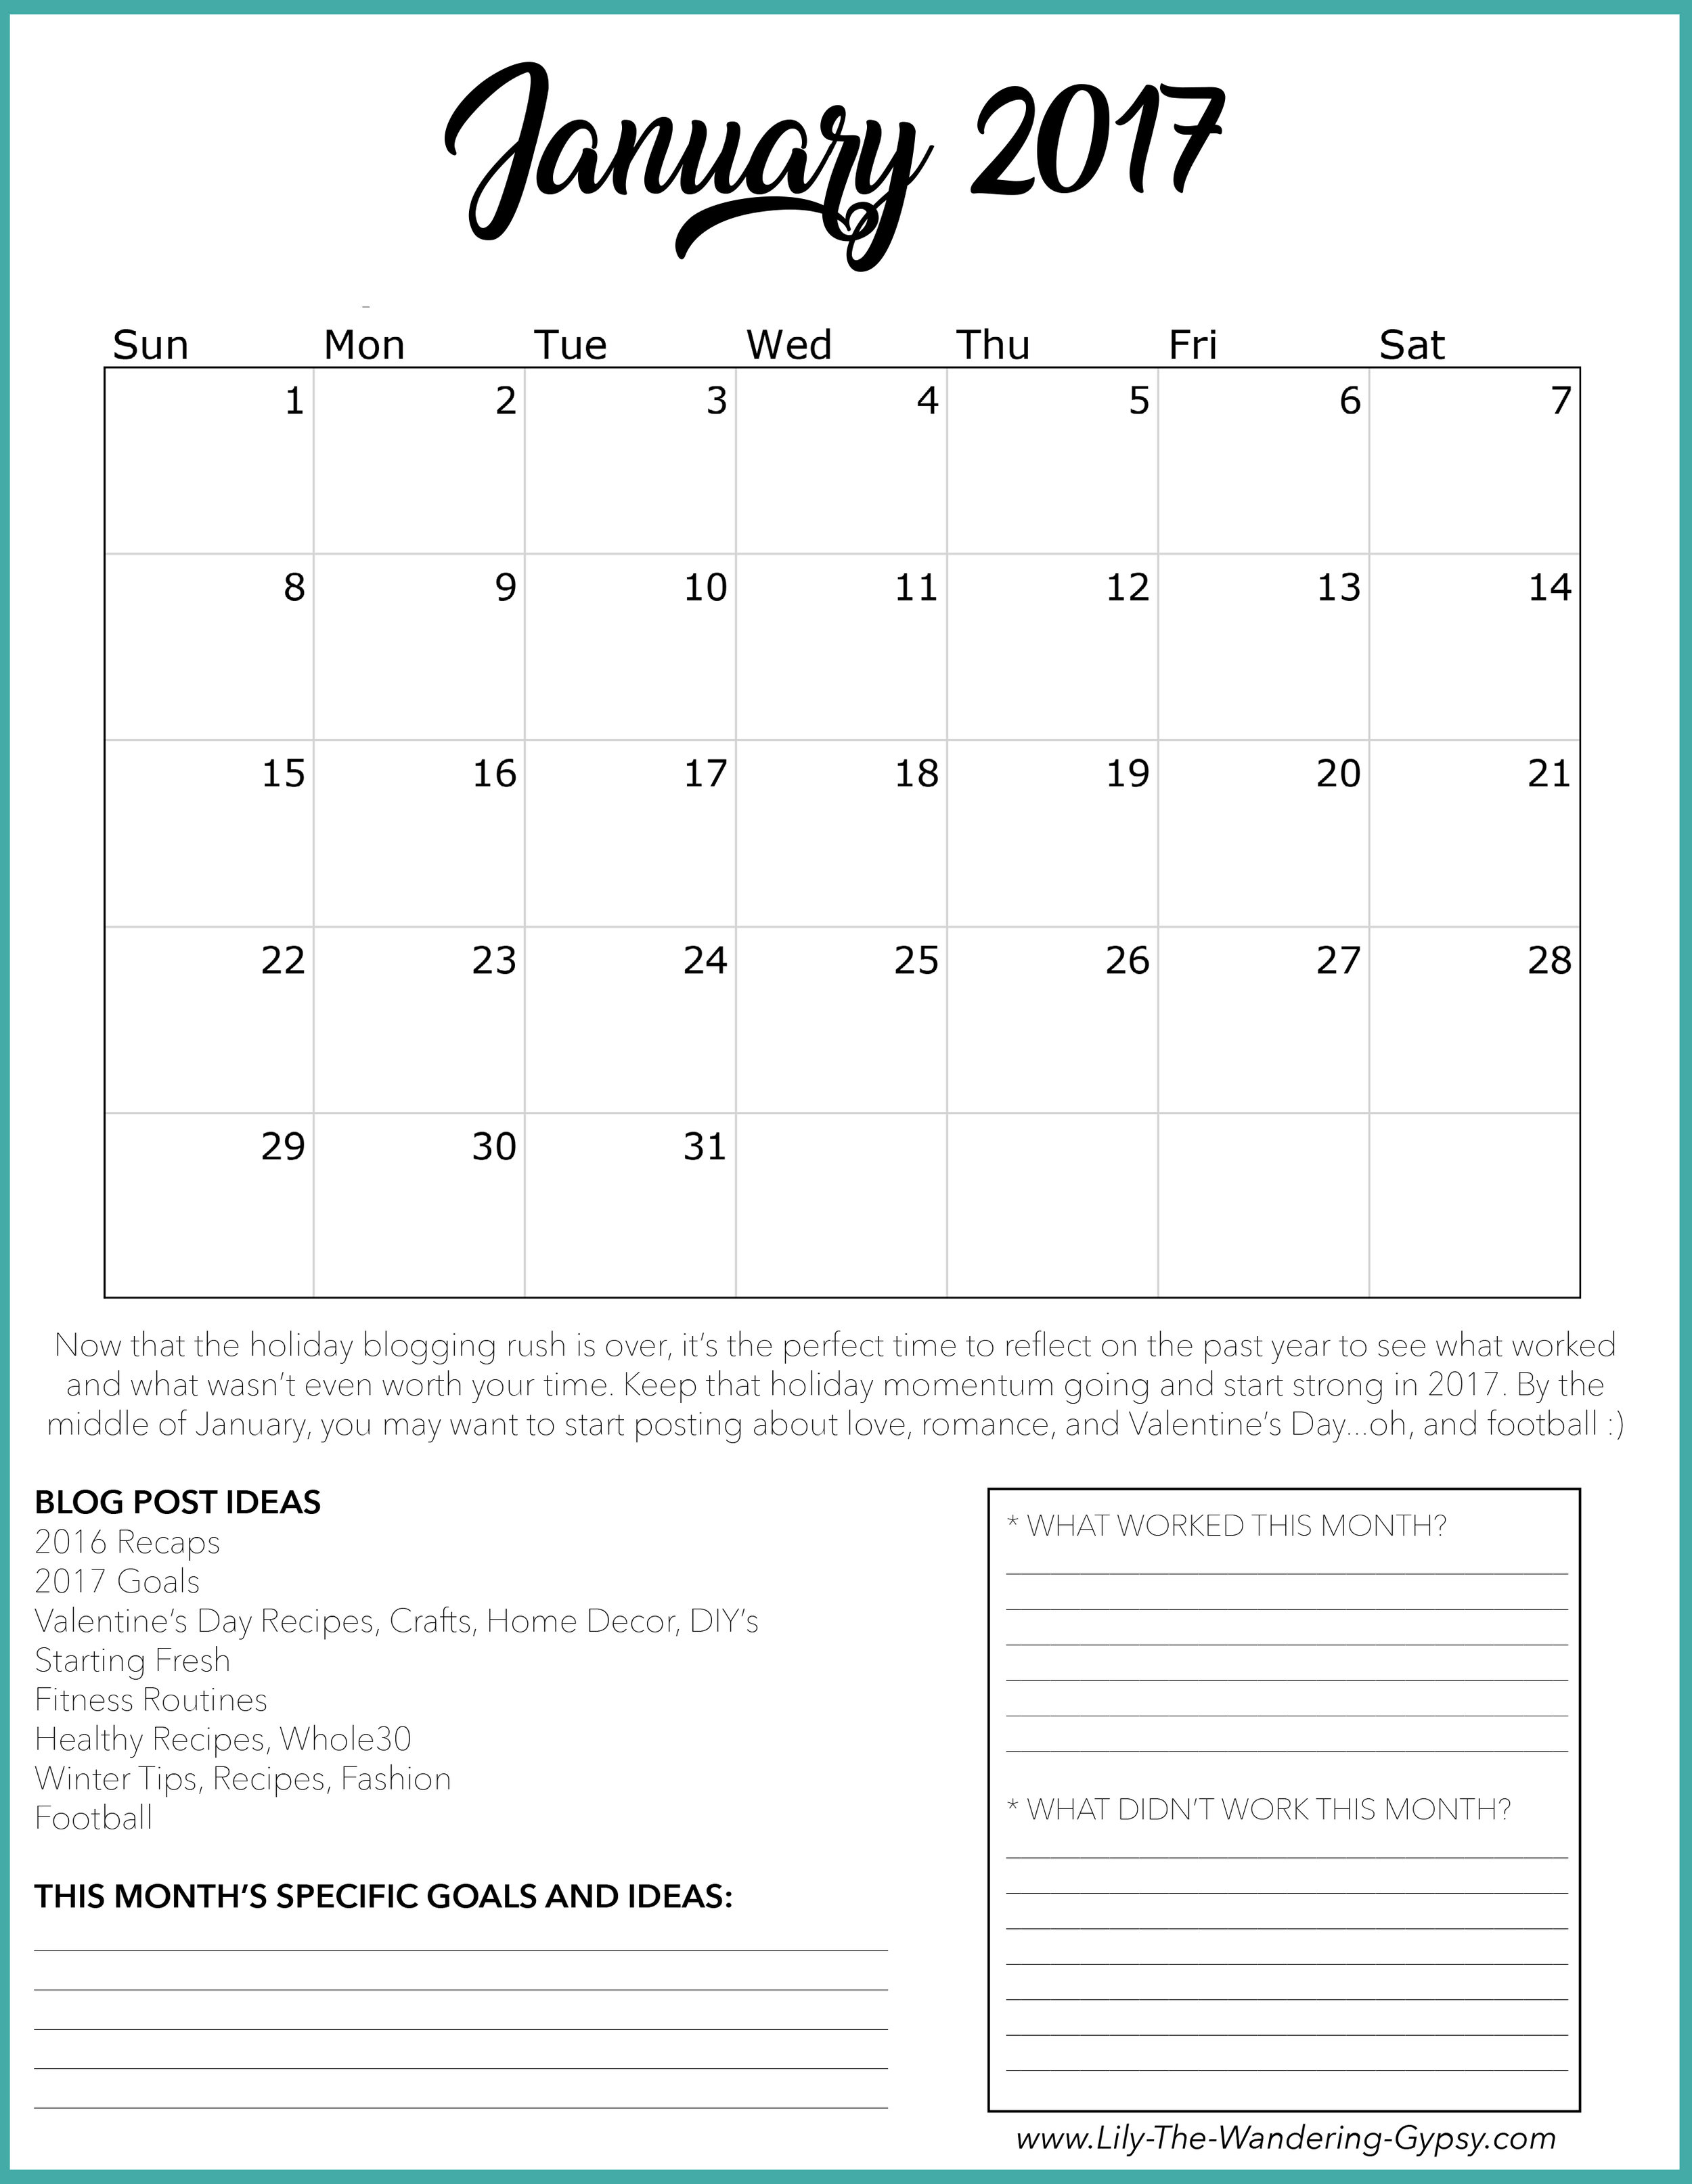 January 2017 Blogging Content Strategy Workbook Page